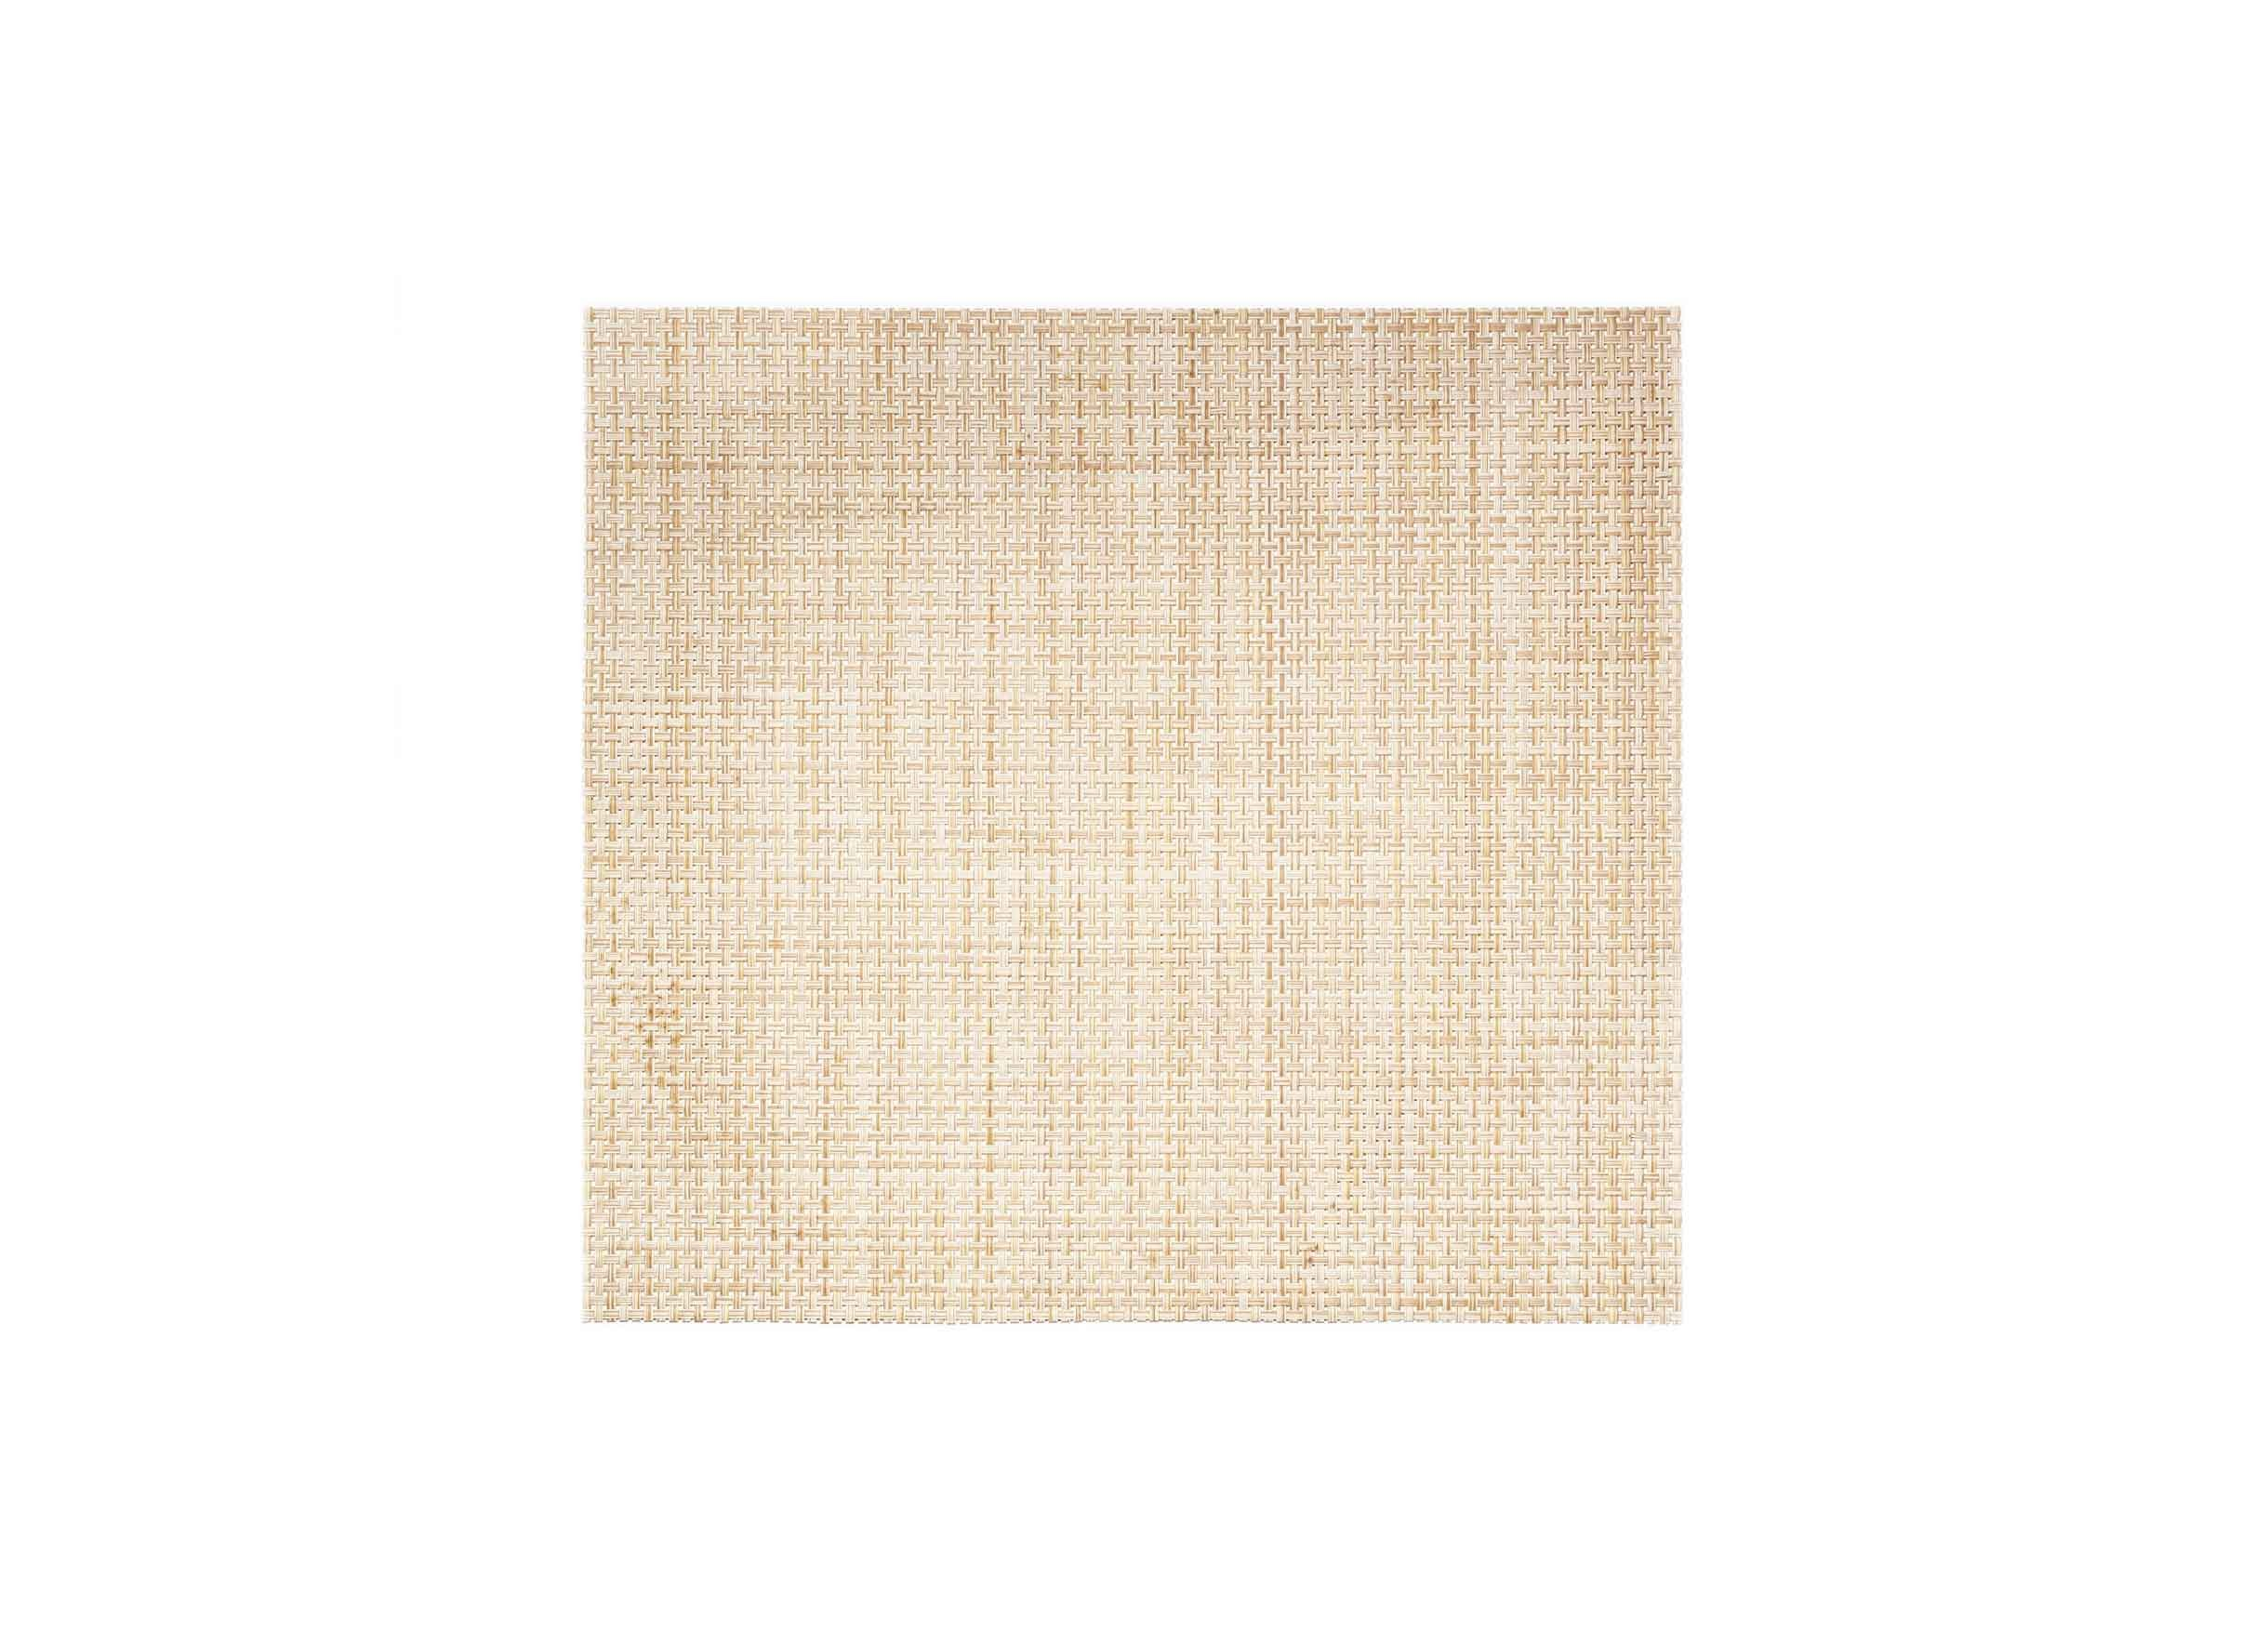 "14"" x 13"" Metroweave Basketweave Mat - Natural"